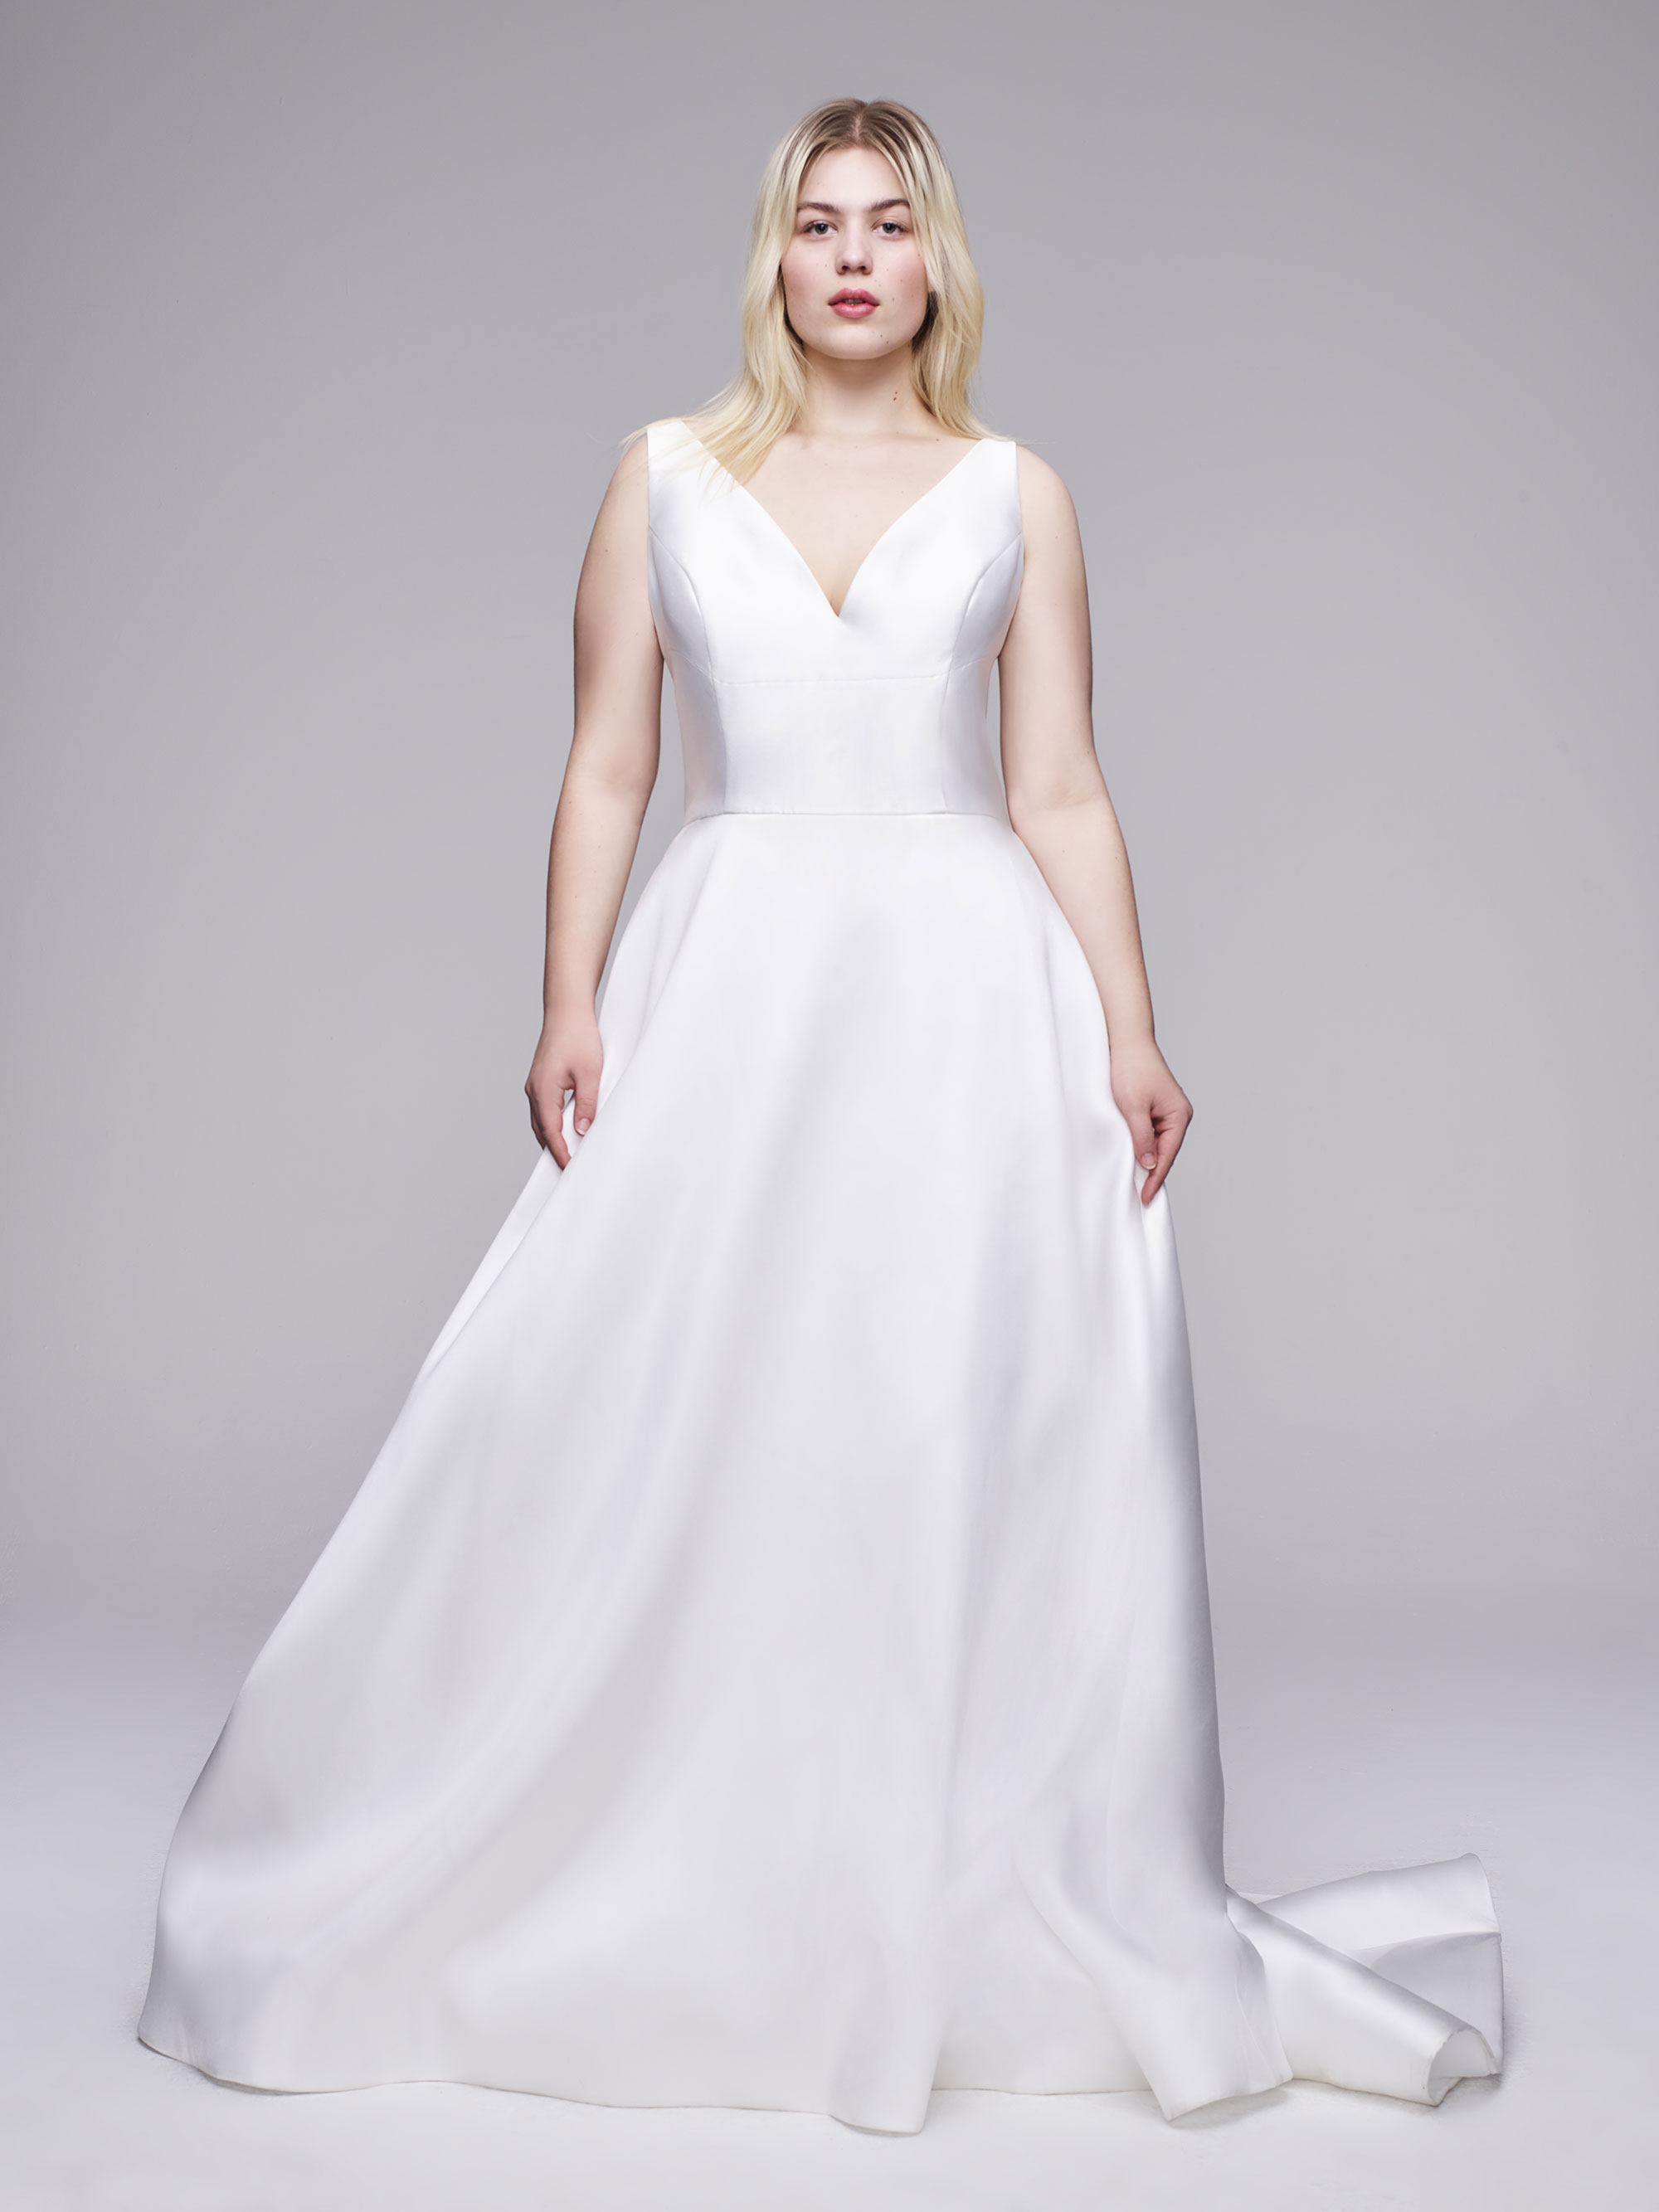 The Raquel Plus Size wedding gown from Curve Couture by Anne Barge